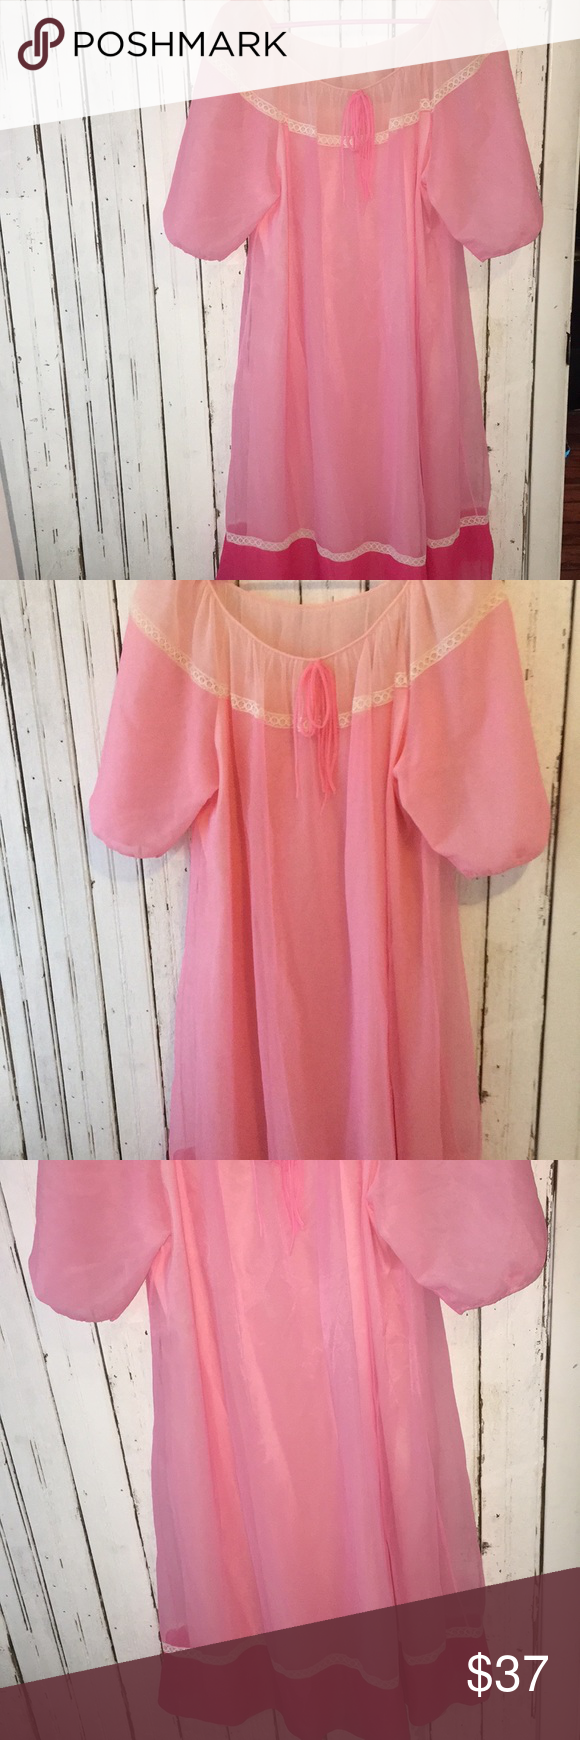 10today Vtg Sleep Gown Schrank Ombre Nightie Vintage Outfits Clothes Design Fashion Design